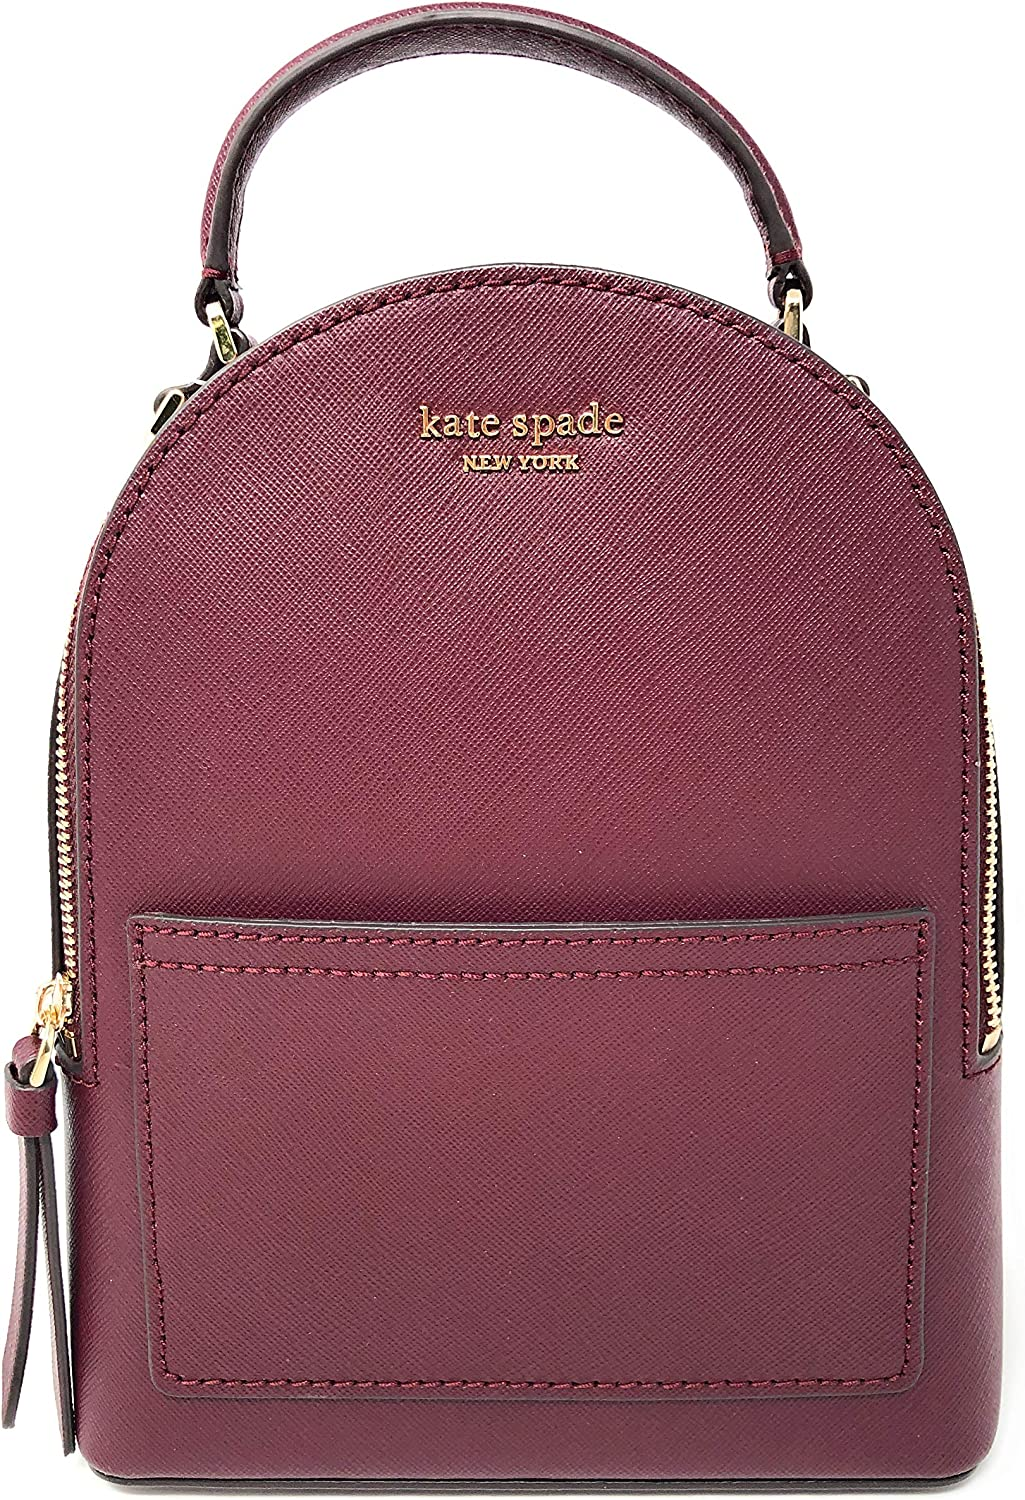 Kate Spade New York Cameron Mini Convertible Backpack